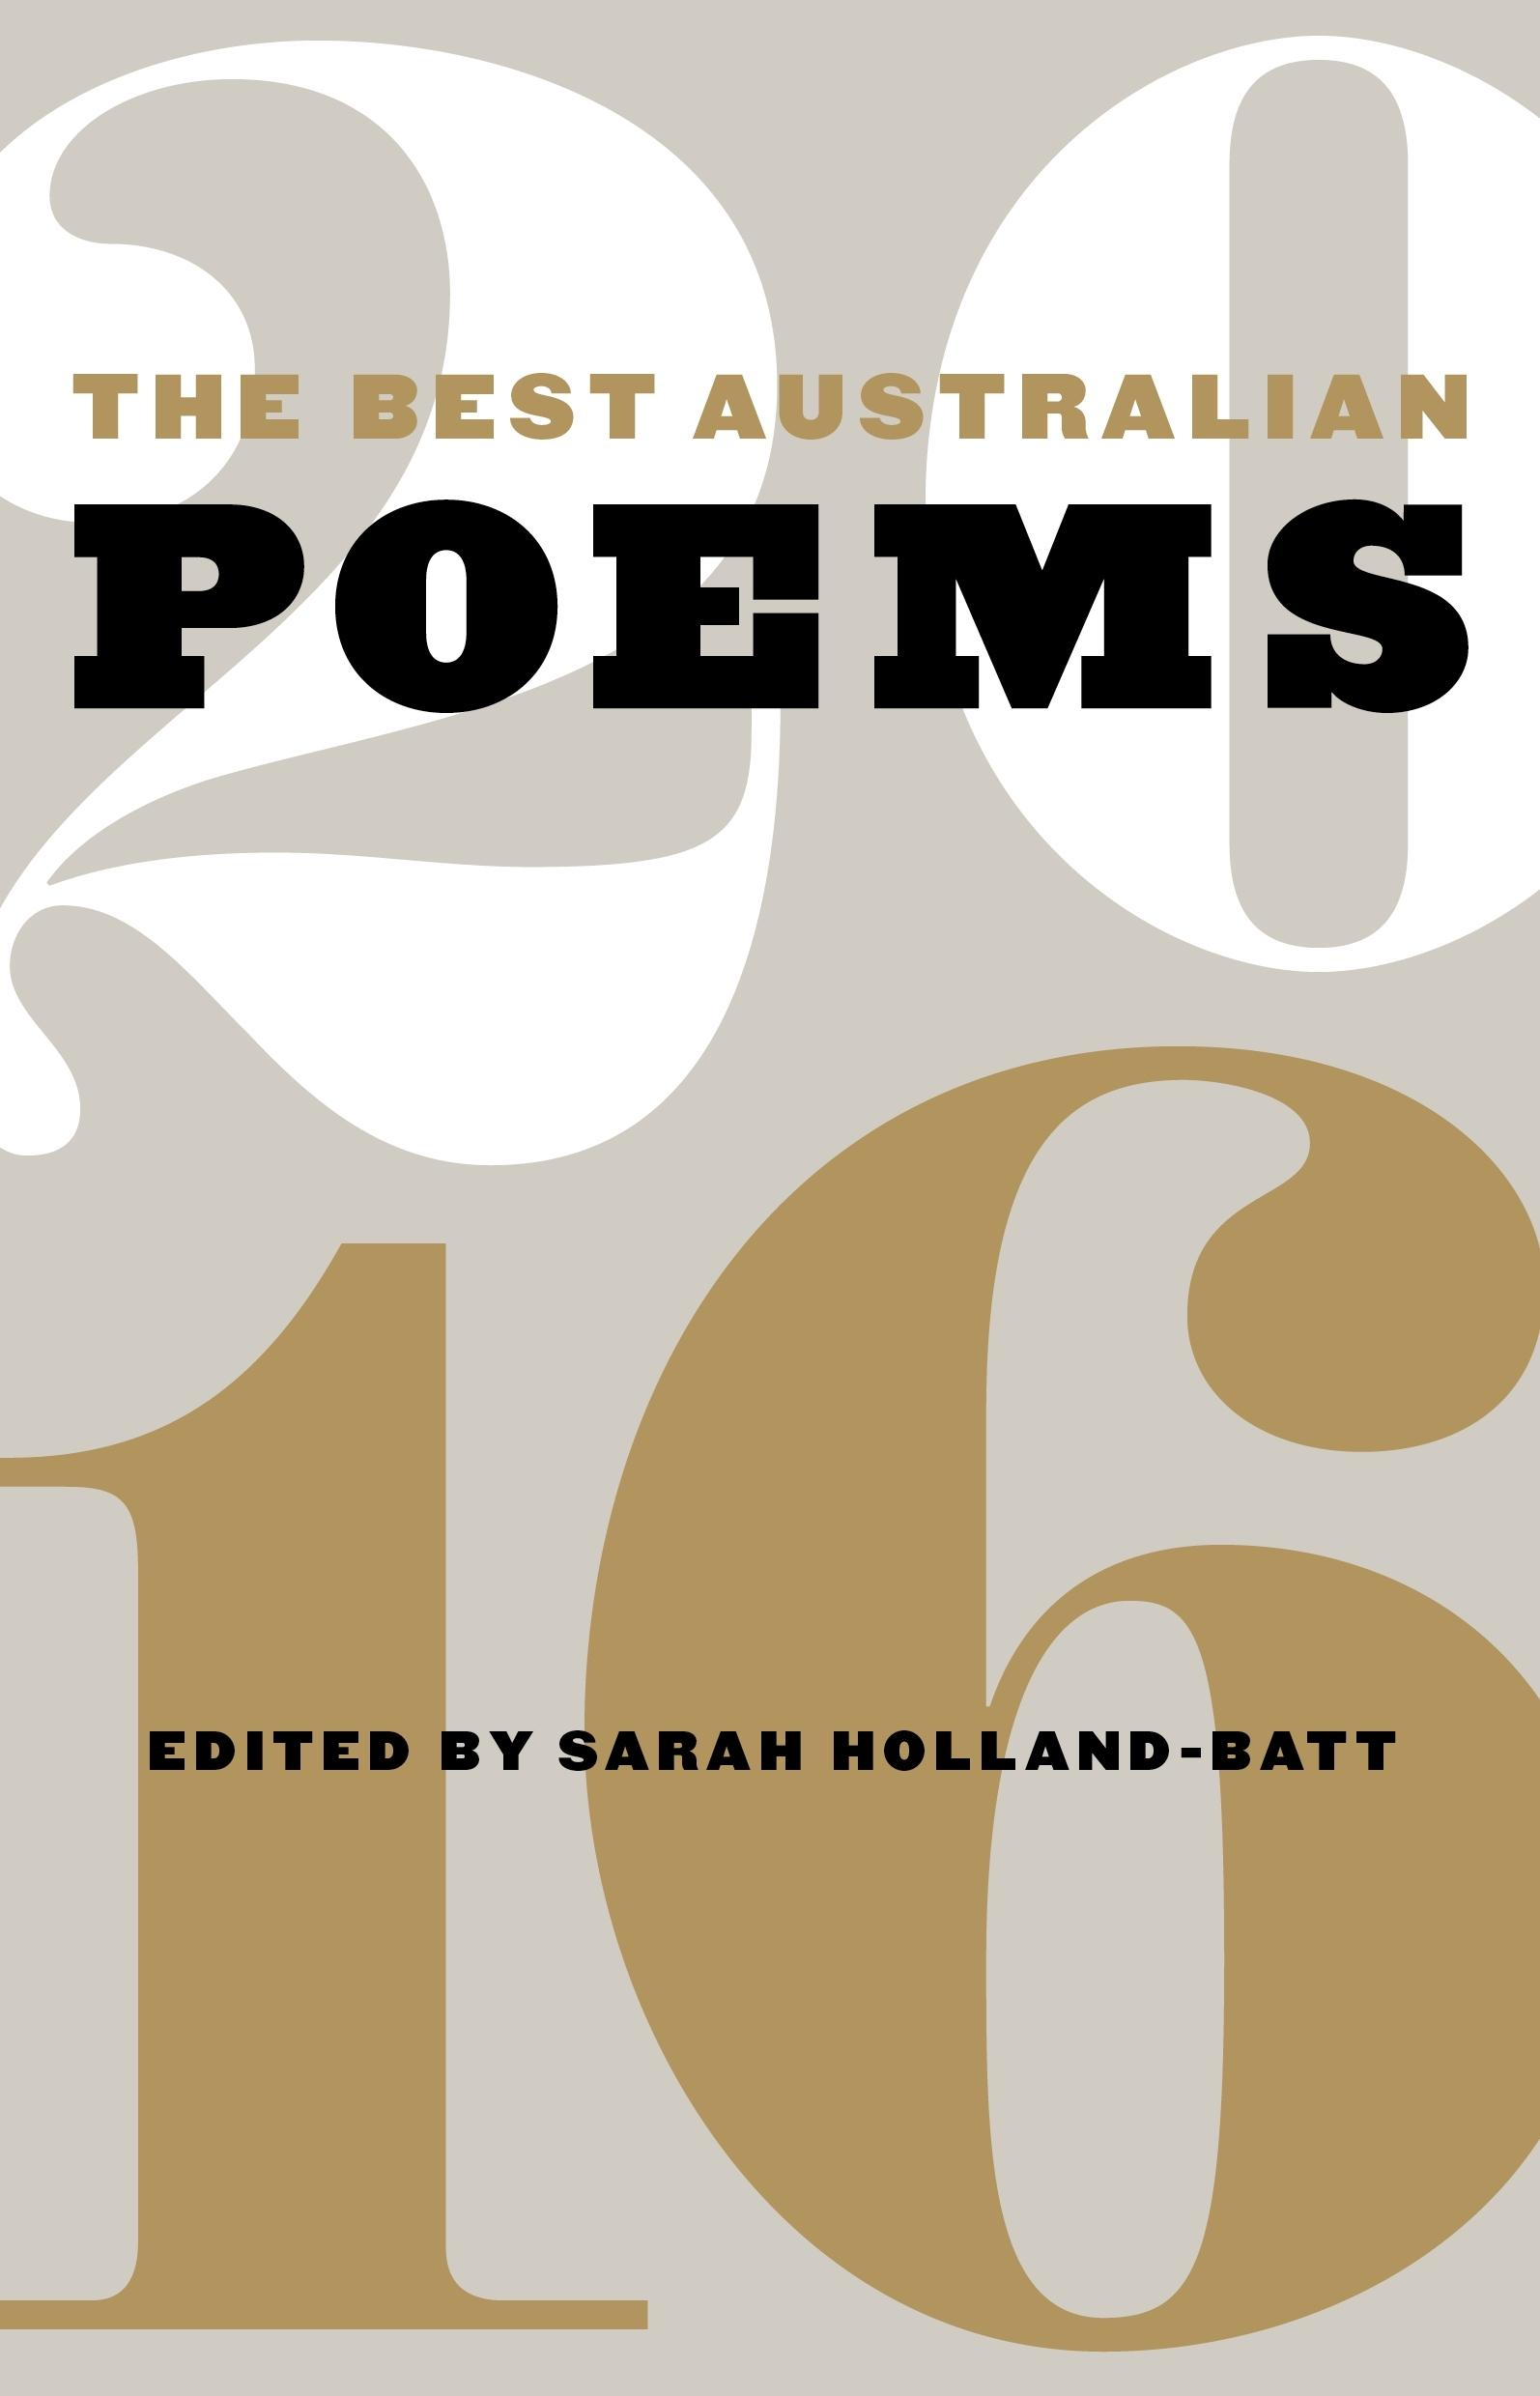 The Best Australian Poems 2016